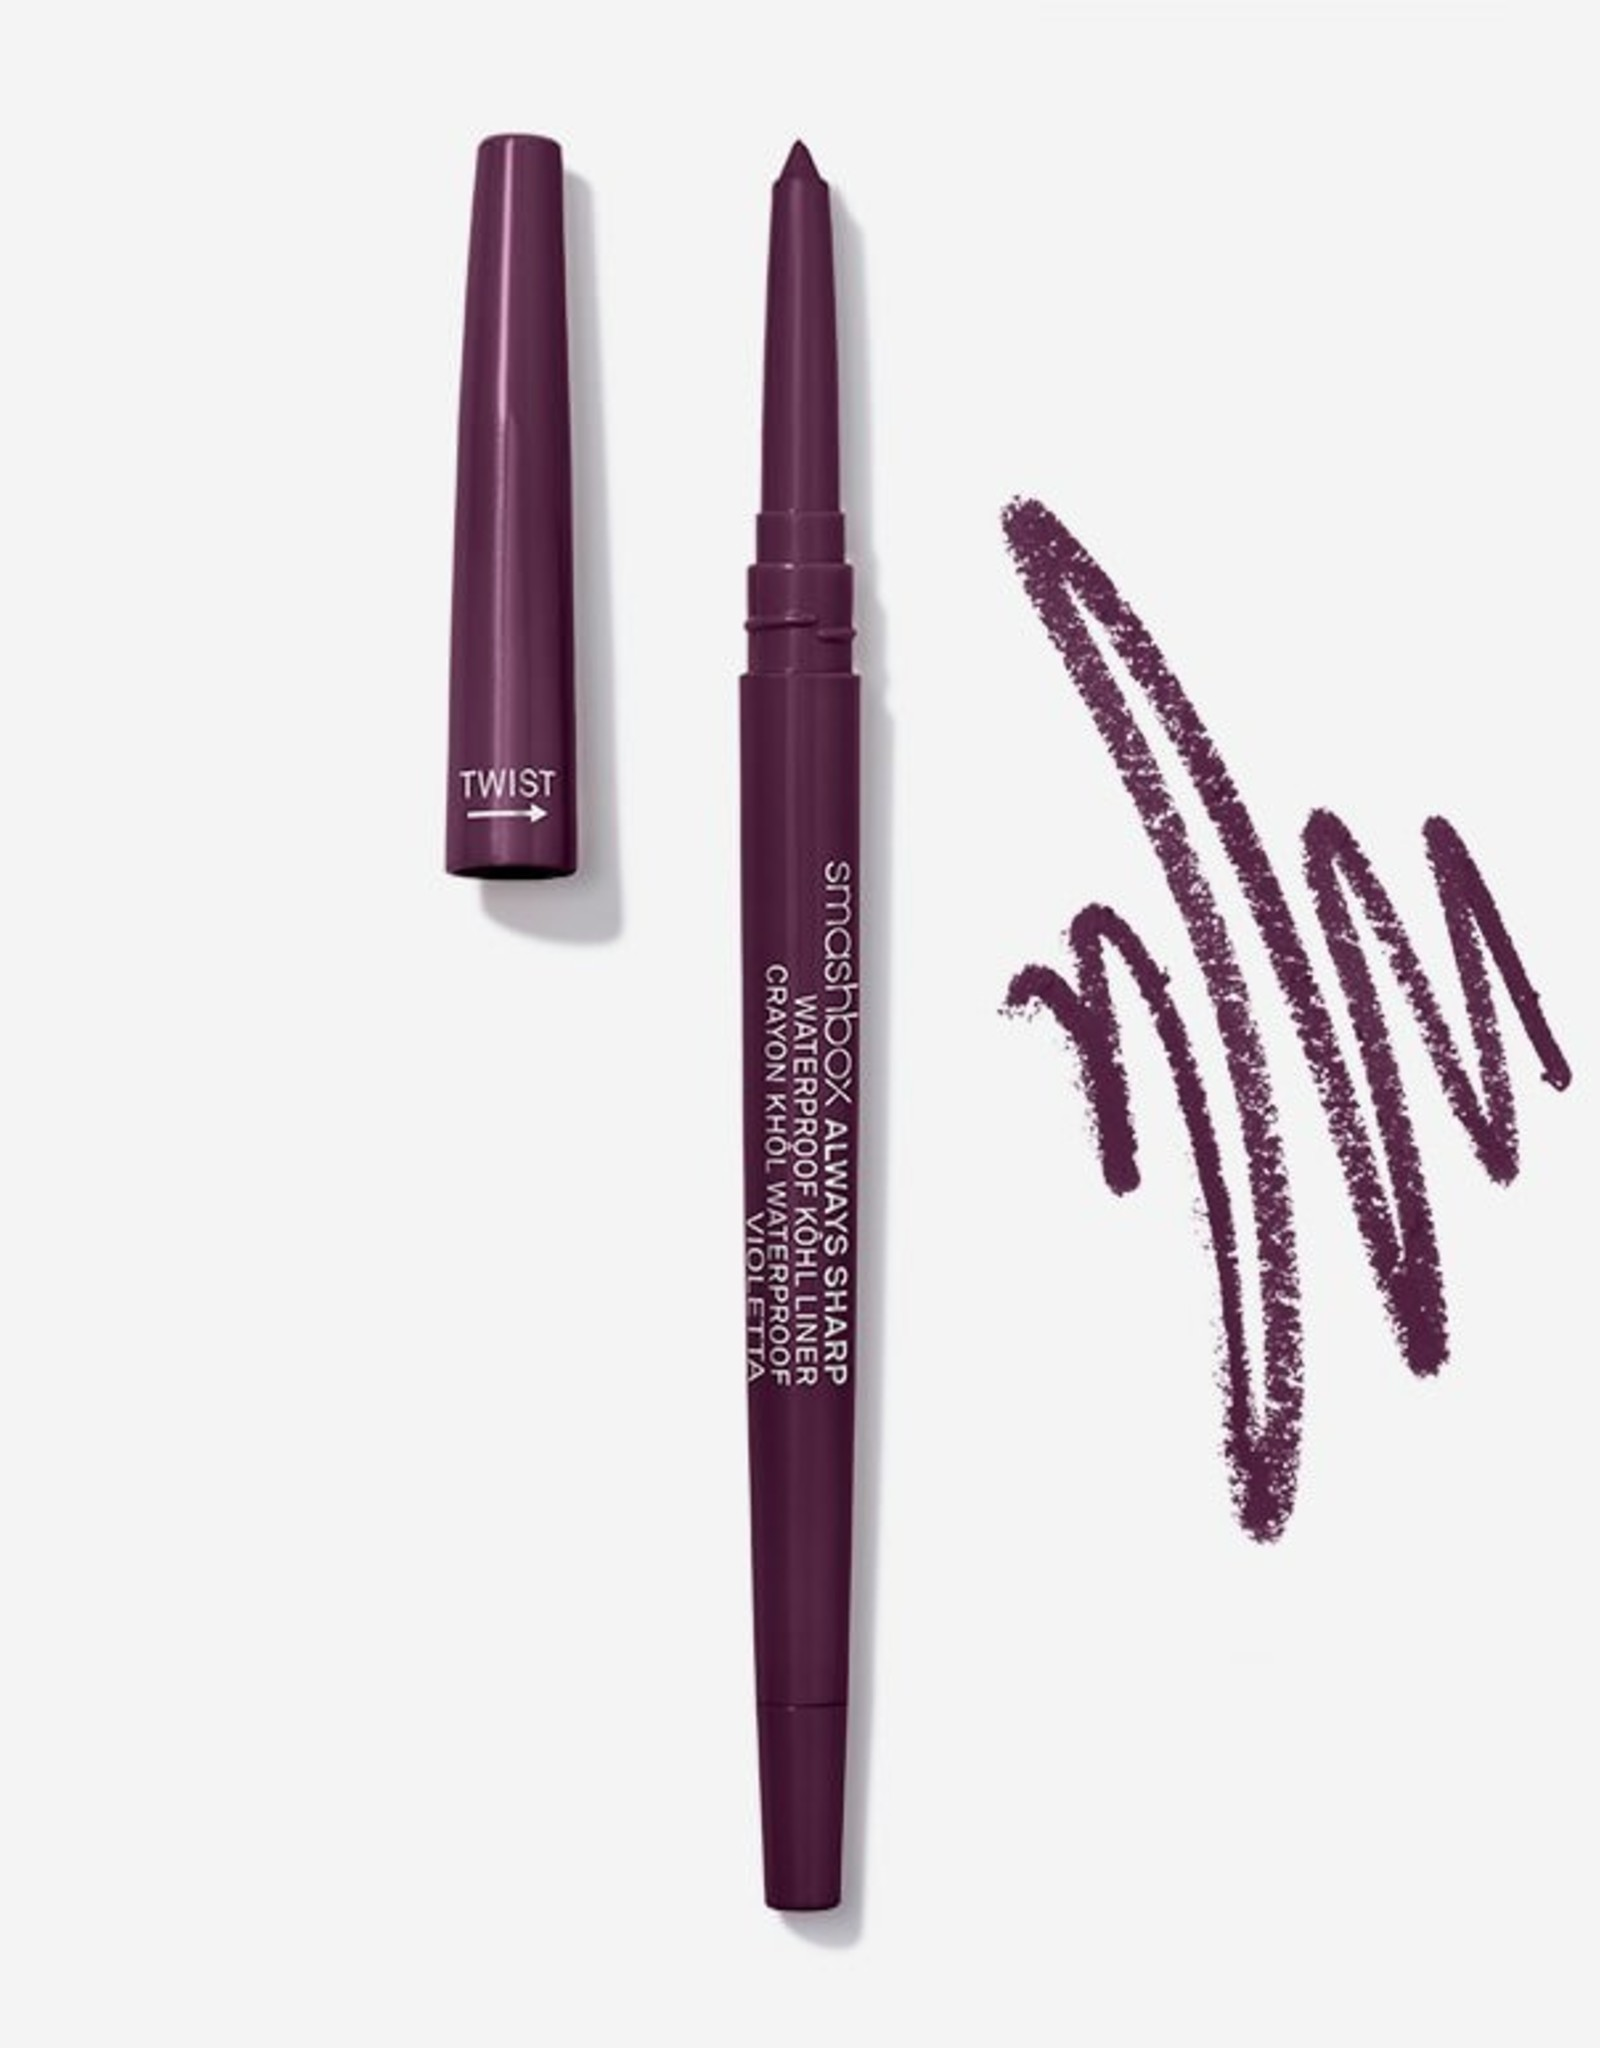 Smashbox Always Sharp Waterproof Kohl Liner